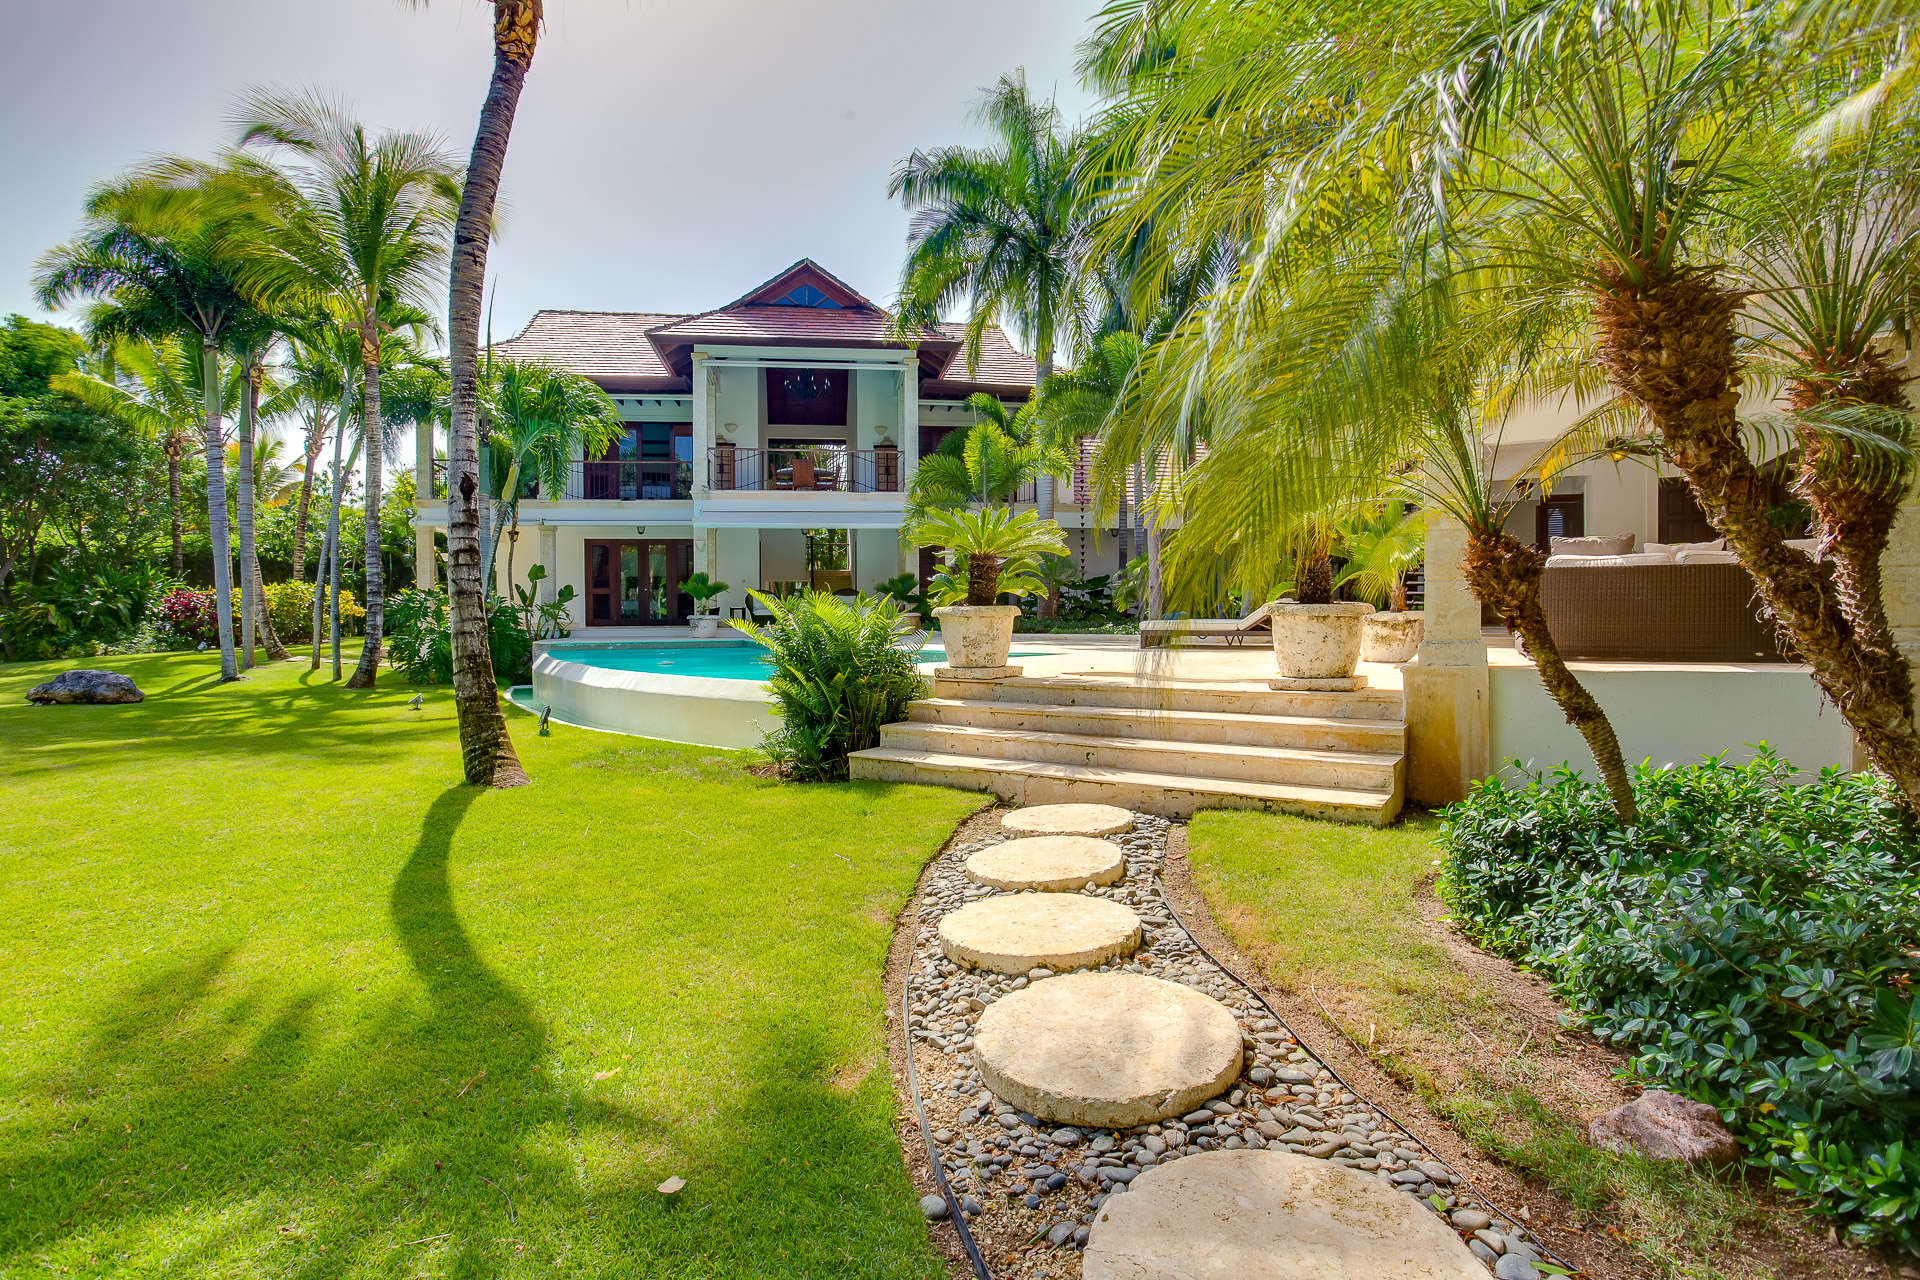 Luxury villa rentals caribbean - Dominican republic - Punta cana - Punta cana resort and club - The Colonial Helena - Image 1/30